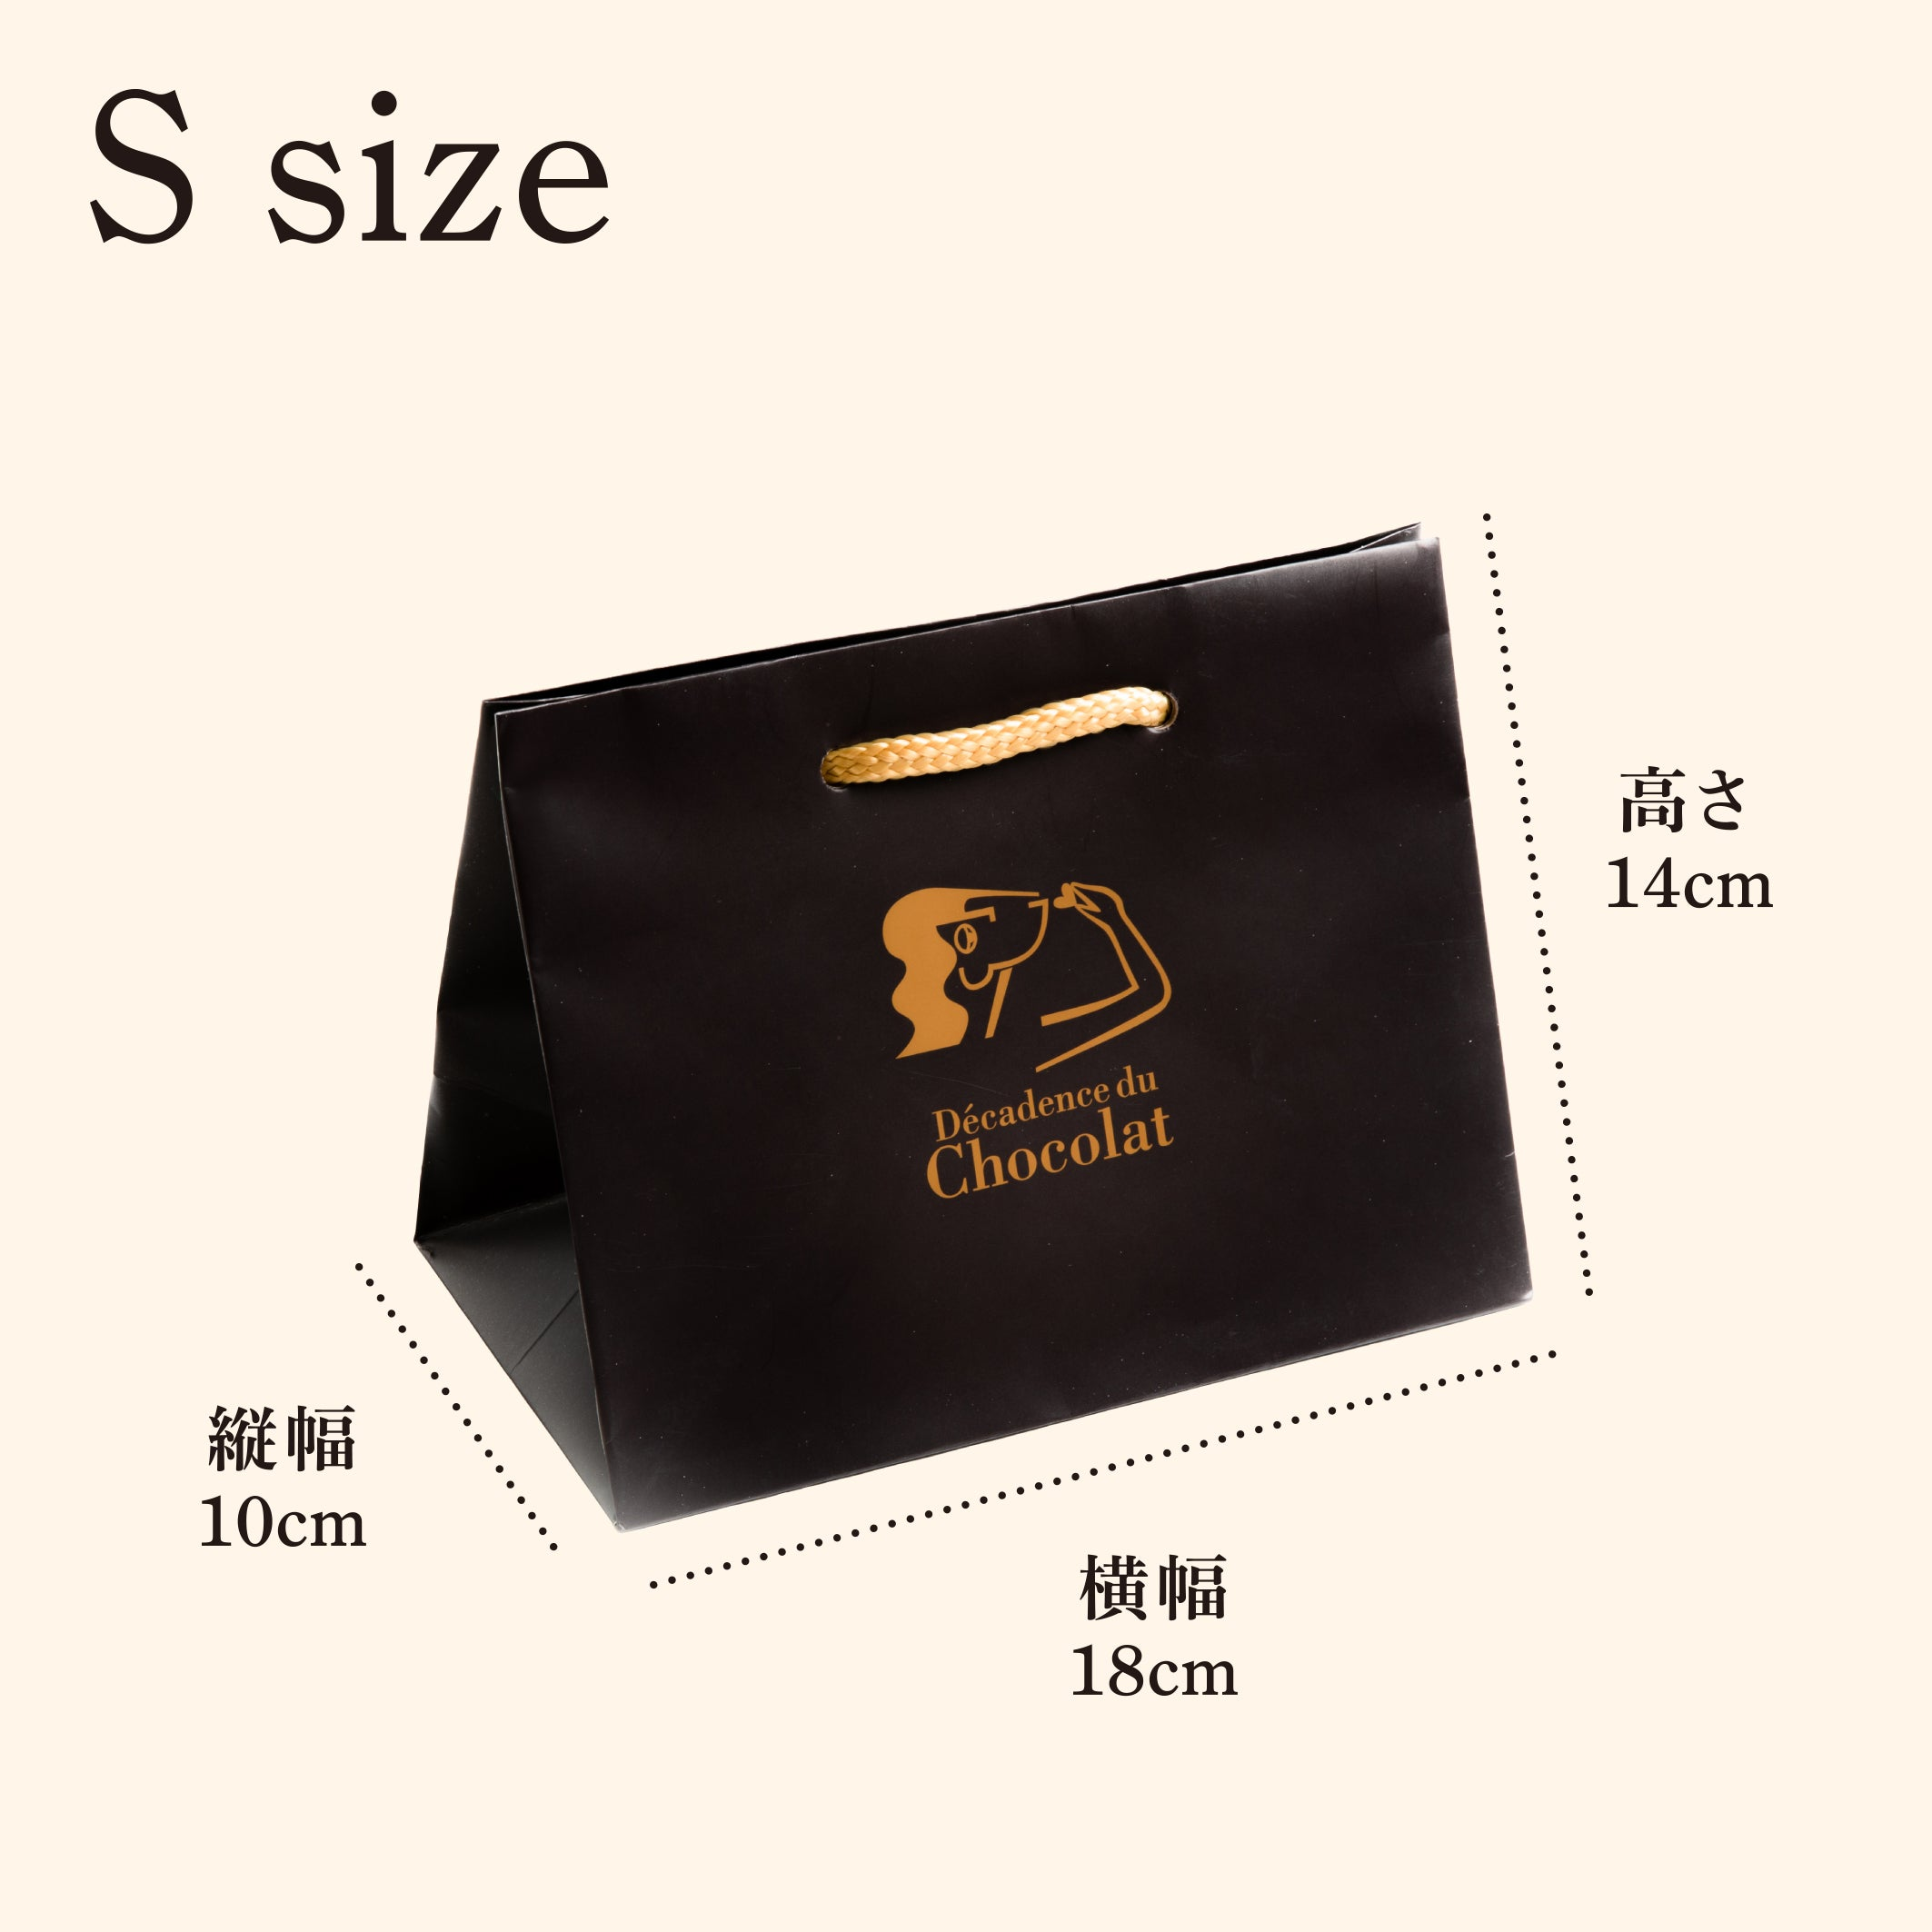 Paper bag with logo (S size)